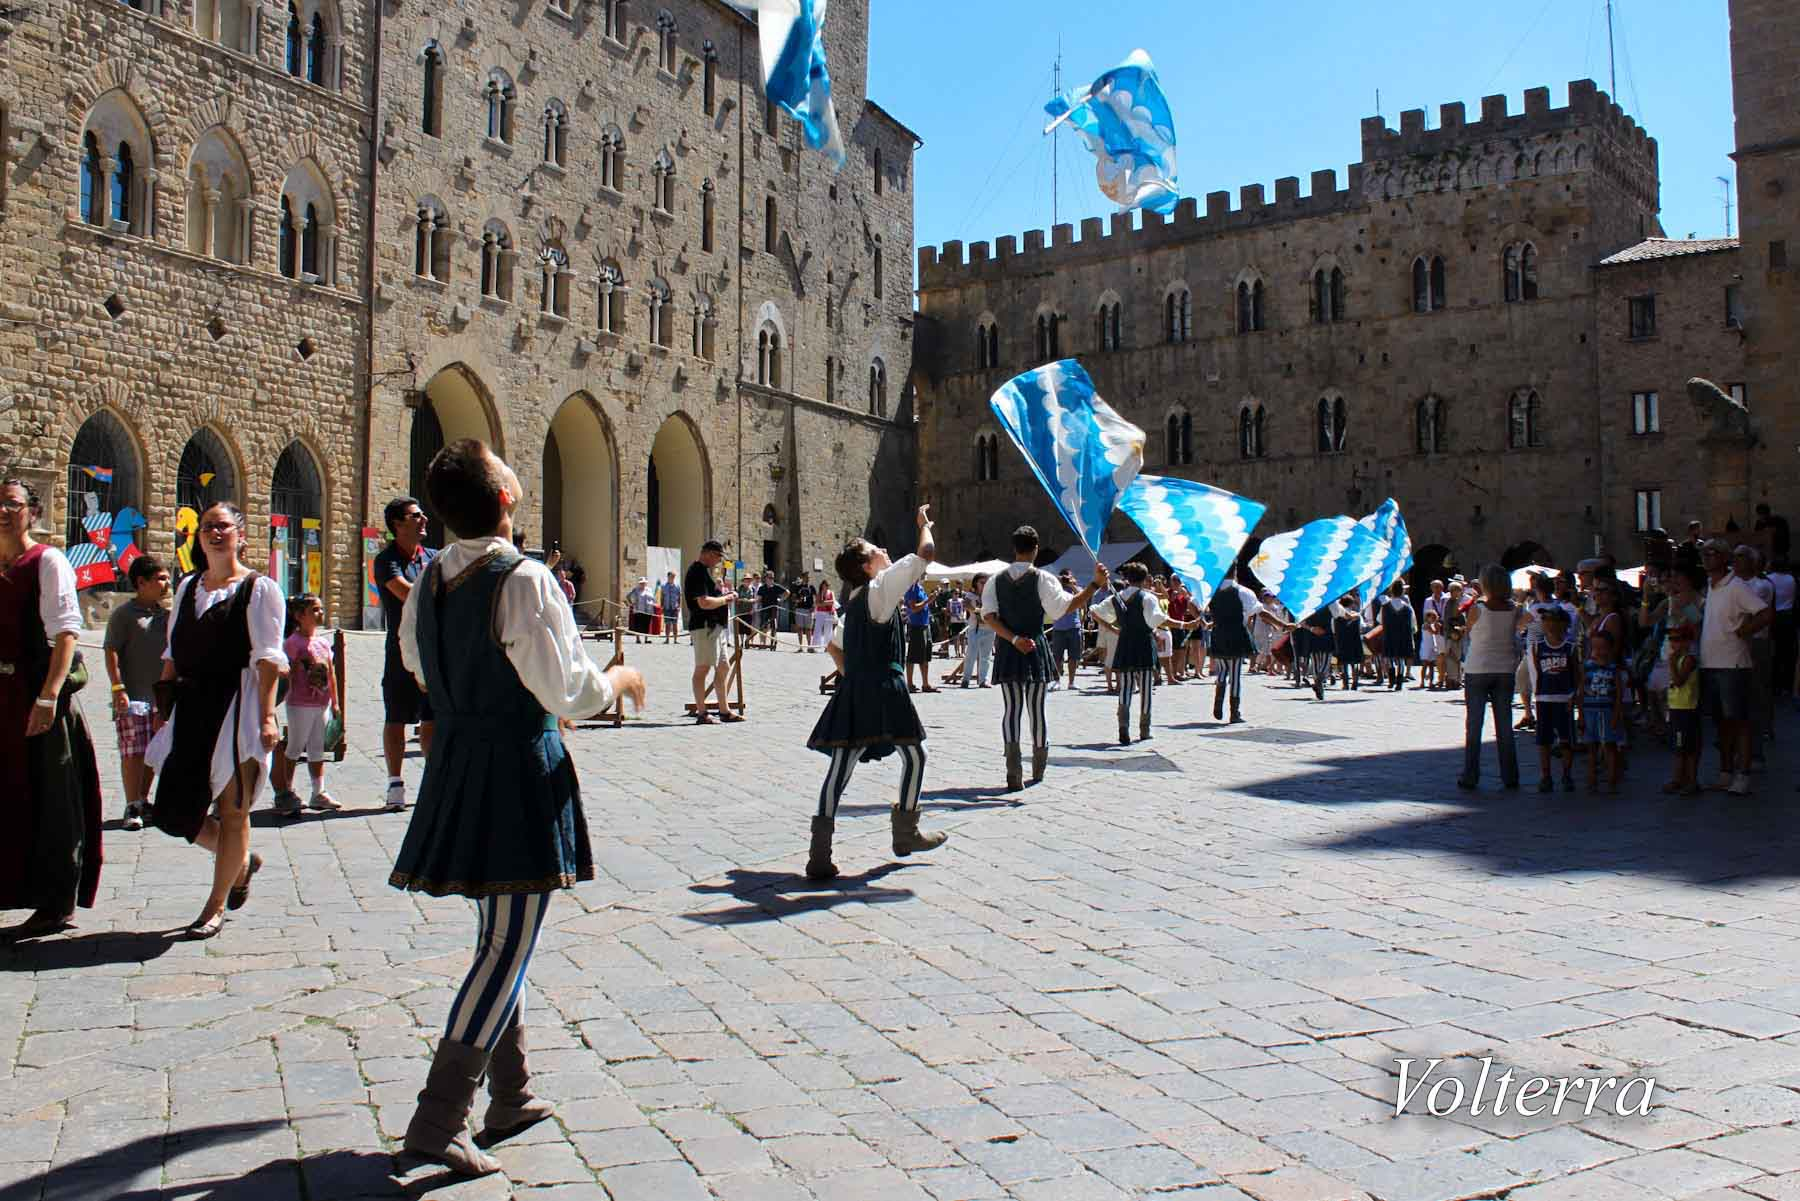 Volterra Minuetto at Piazza dei Priori - Best places to visit in Tuscany